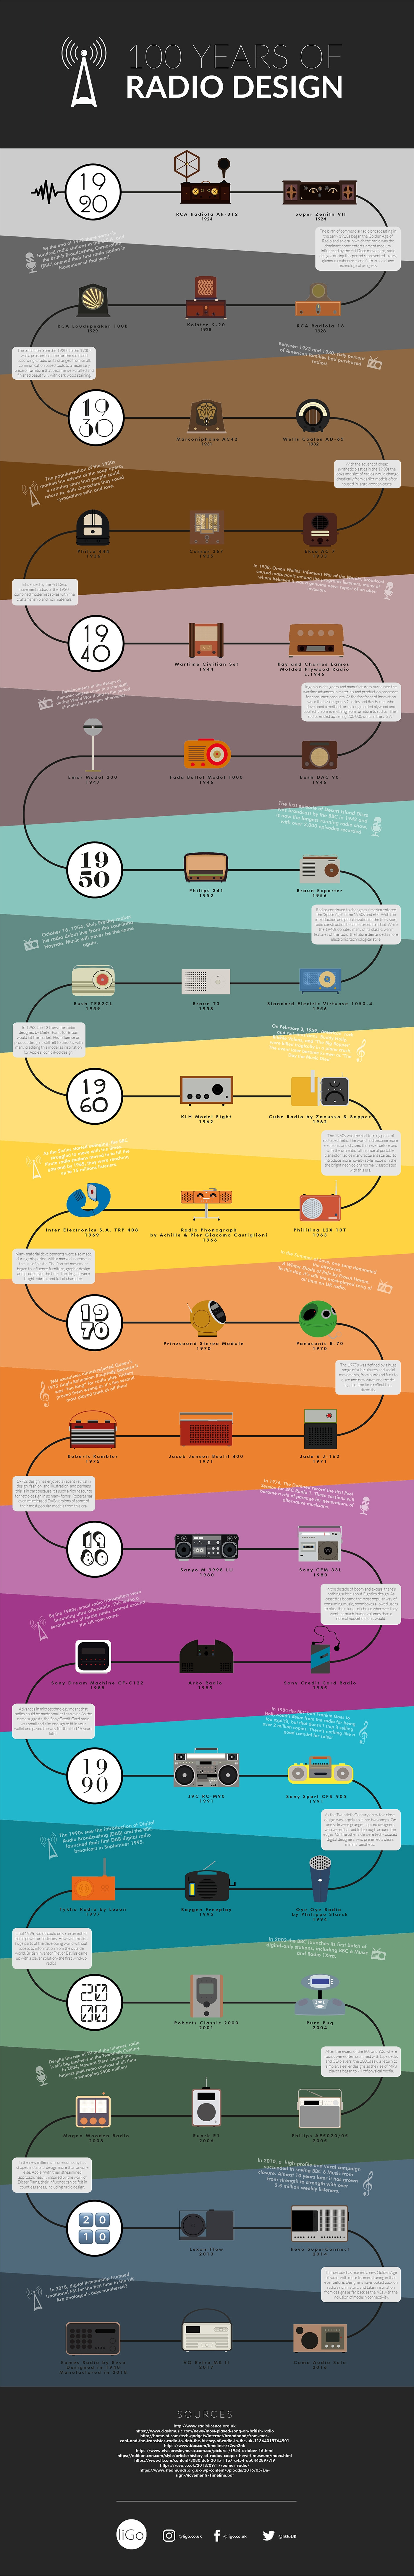 100 years of radio design [infographic]